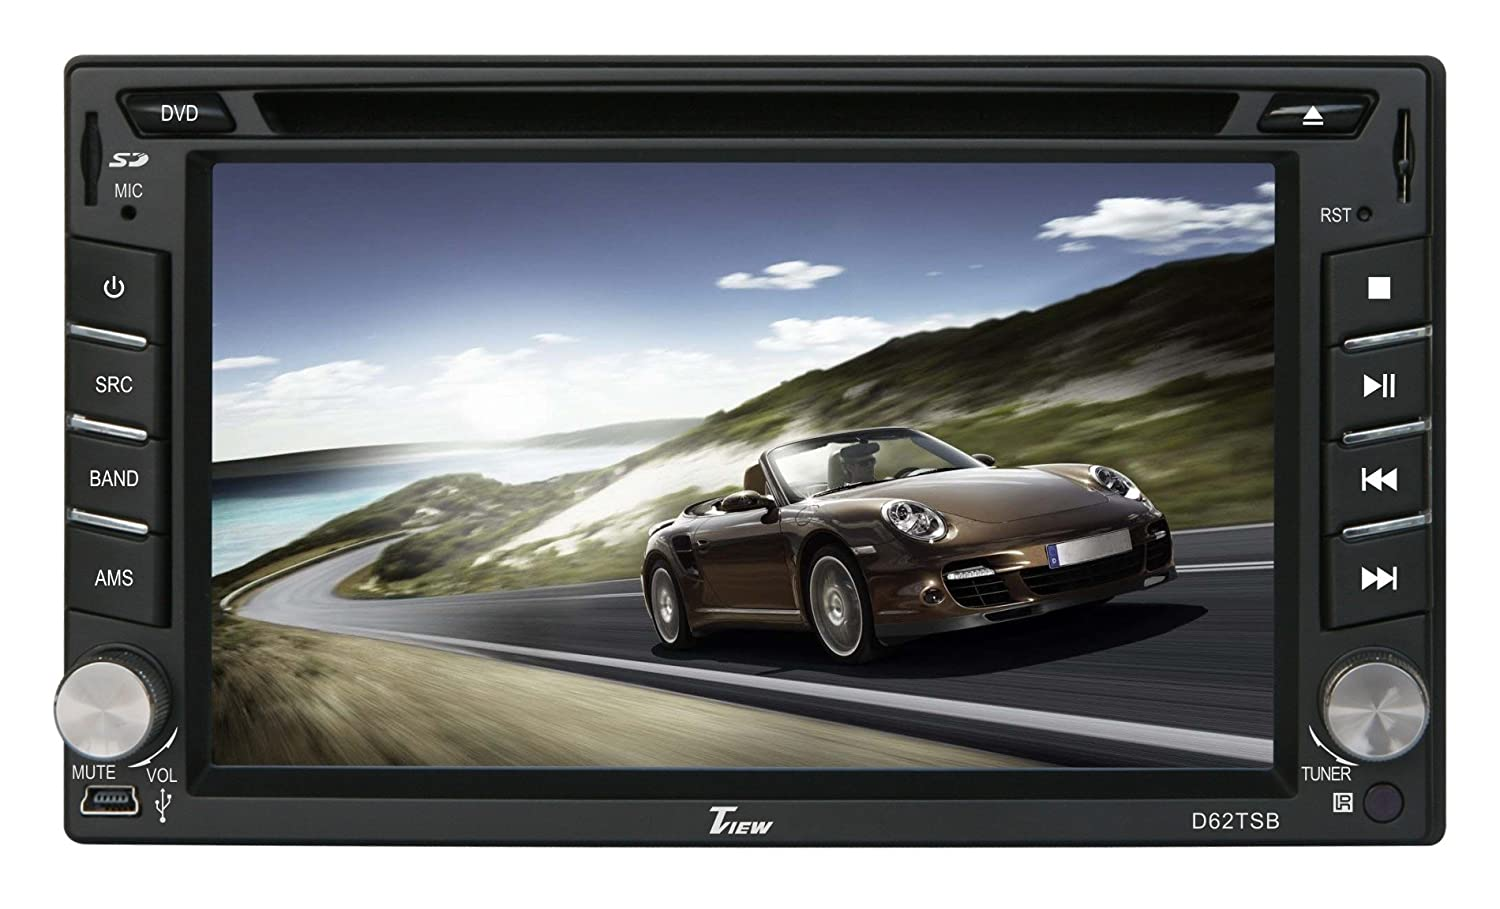 71N8 eVkMJL._SL1500_ amazon com tview d62tsb 6 2 inch double din touch screen with  at pacquiaovsvargaslive.co